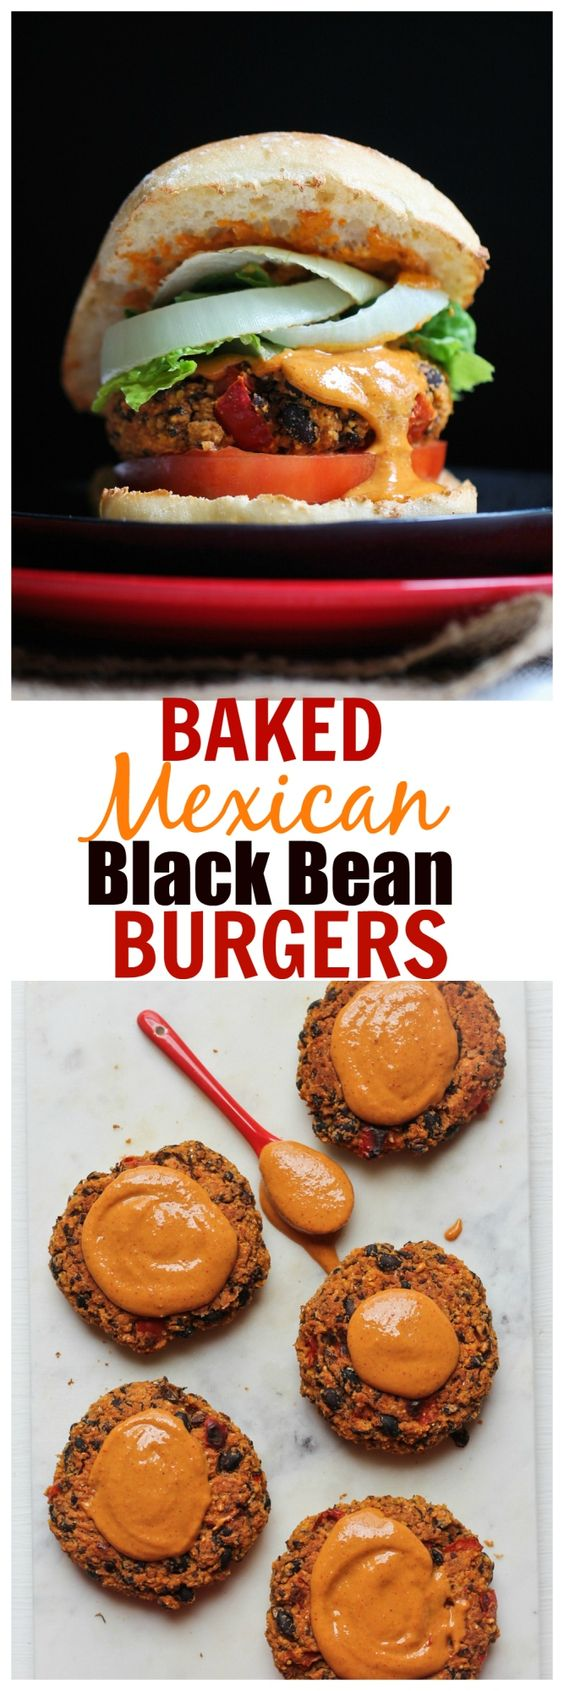 Guilt-free, oil-free, HEALTHY Baked Mexican Black Bean Burgers. One of the most popular blog recipes and a hit with everybody. Just 8 ingredients!